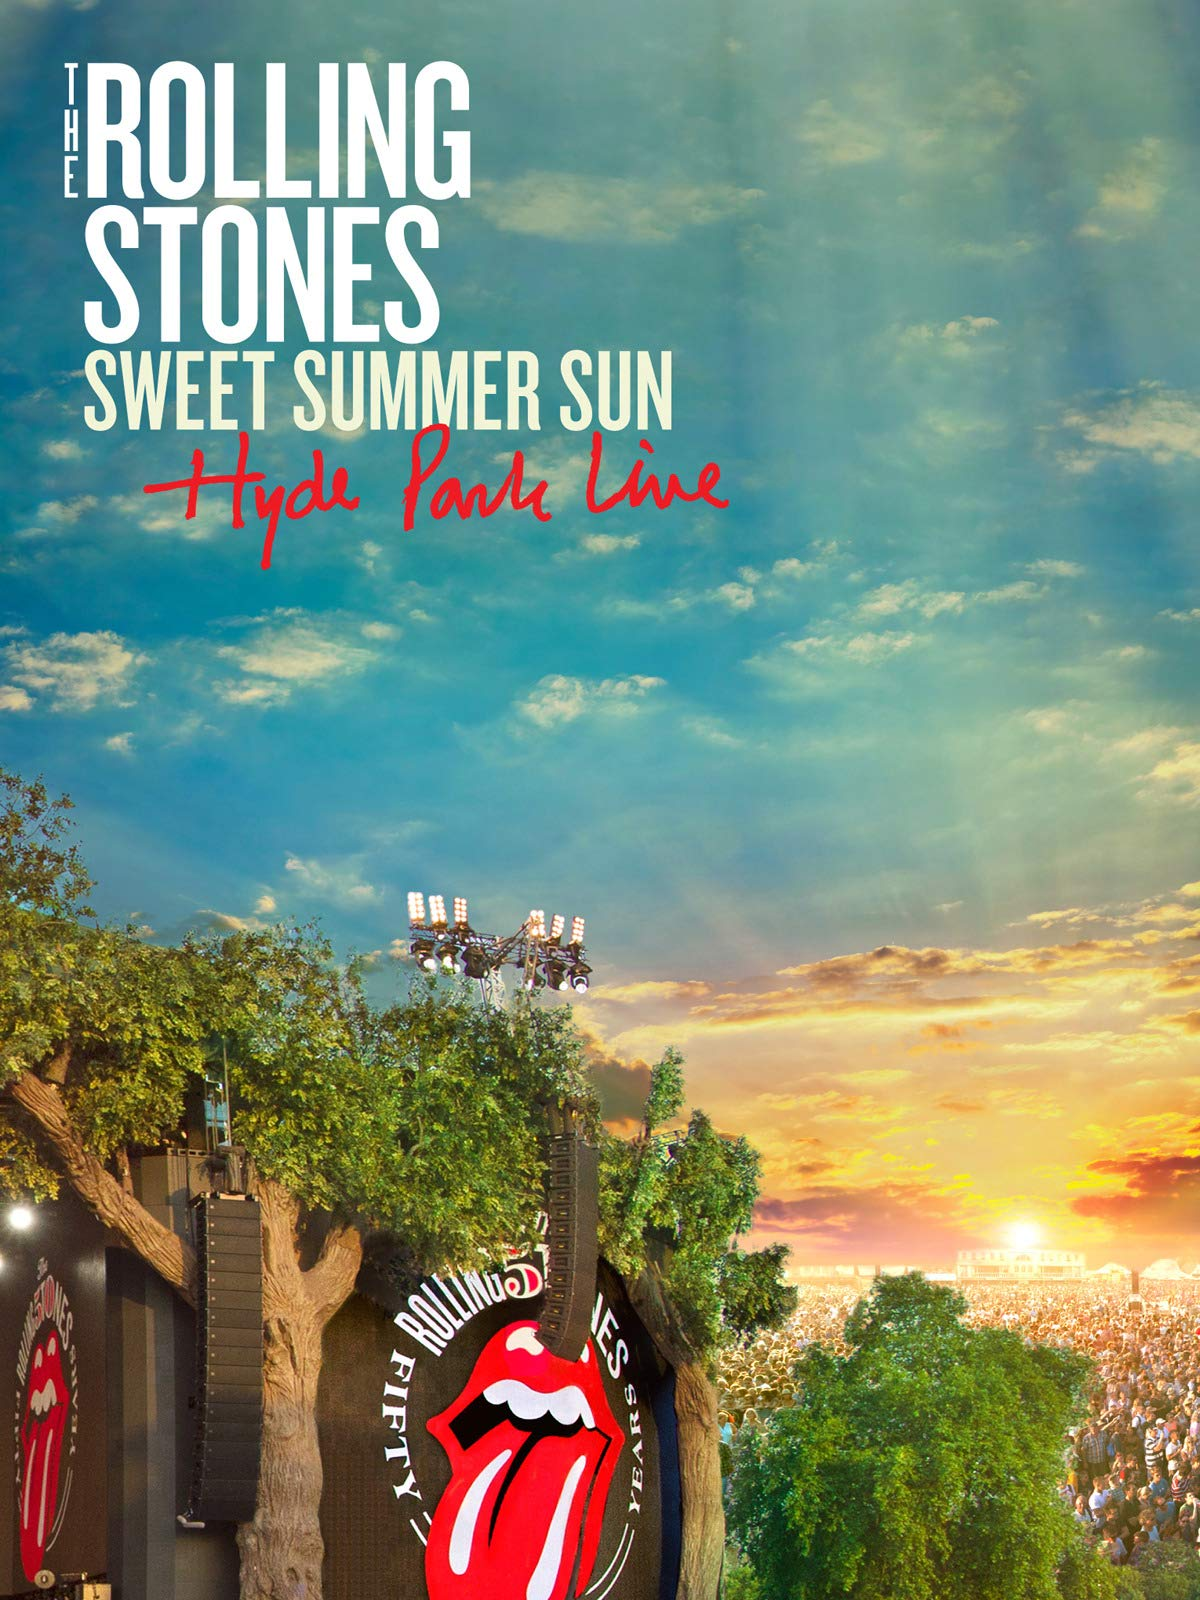 The Rolling Stones Sweet Summer Sun Hyde Park Live on Amazon Prime Video UK